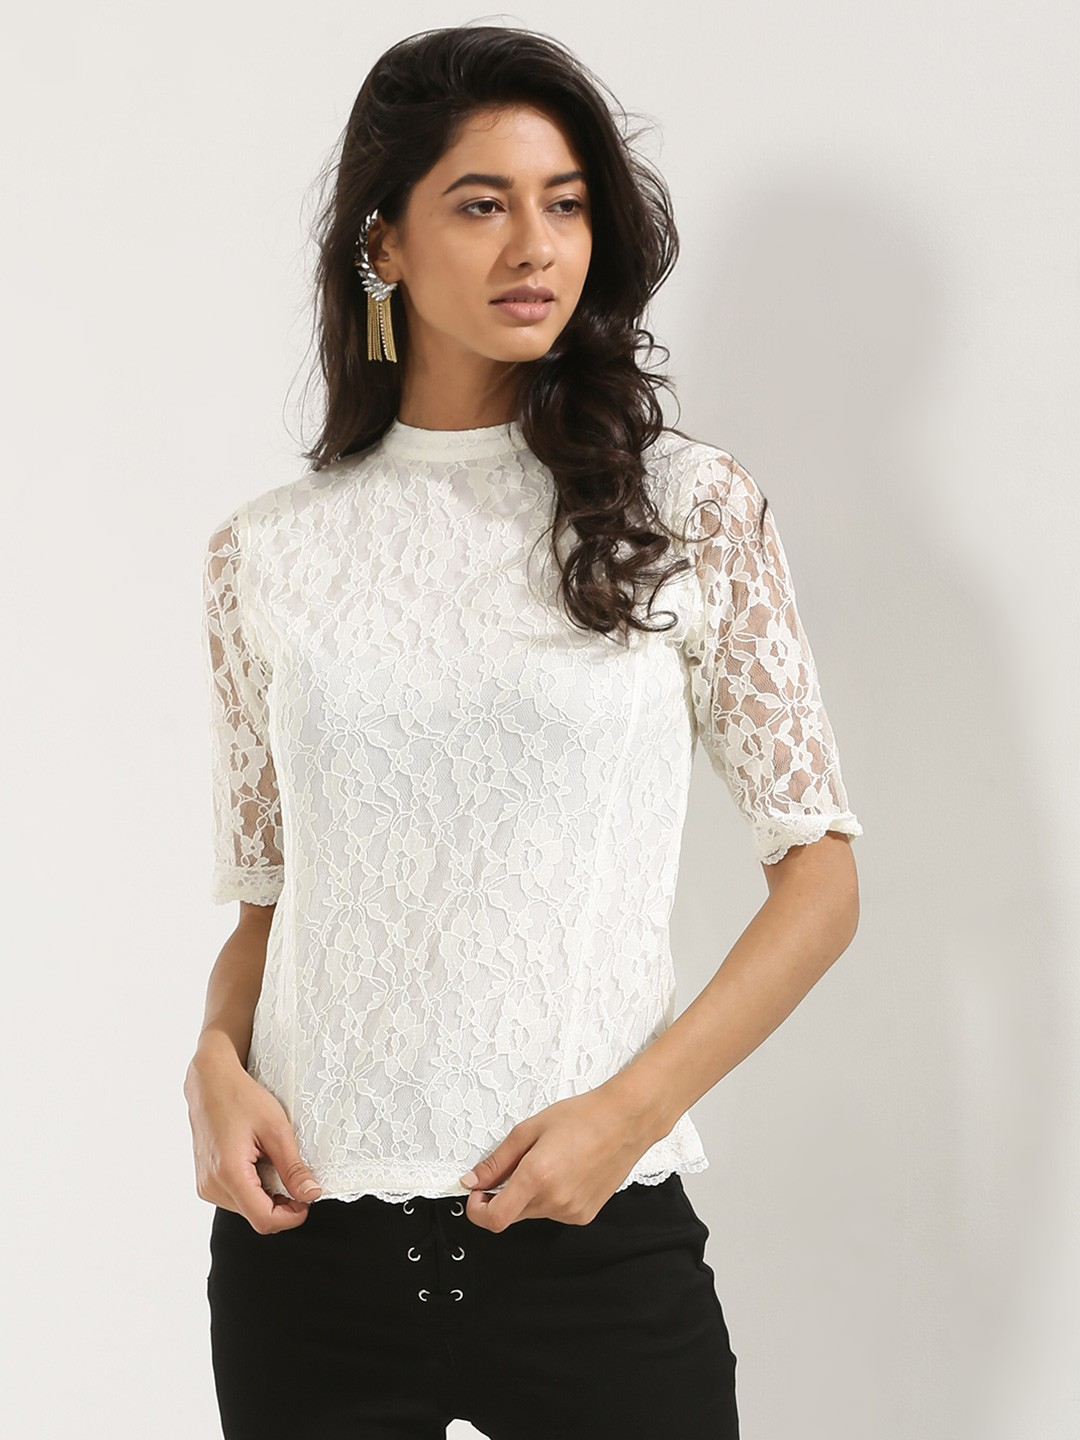 Are you looking for Tops for Girls online? Style yourself with Stylish Ladies Tops starting from only. Discover latest trends of Tops for Women from Brands with lowest prices.